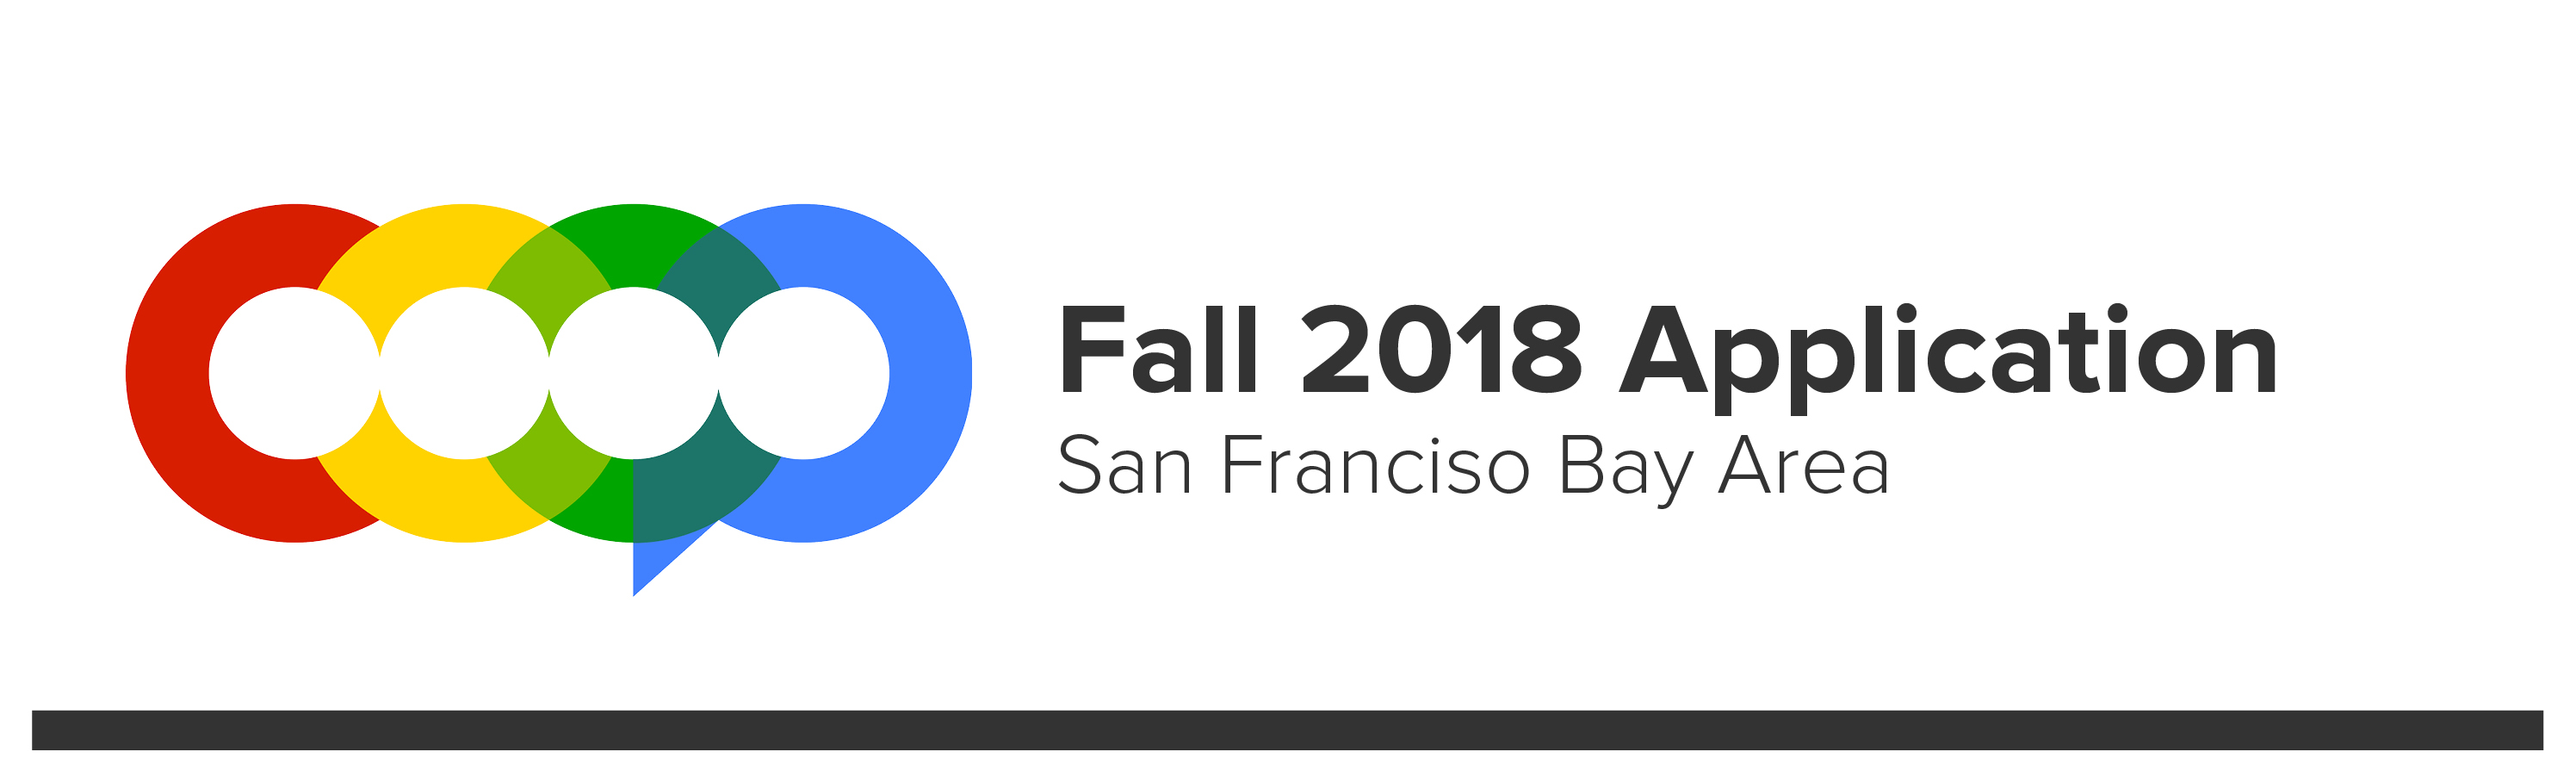 COOP Fall 2018 Application in San Francisco Bay Area